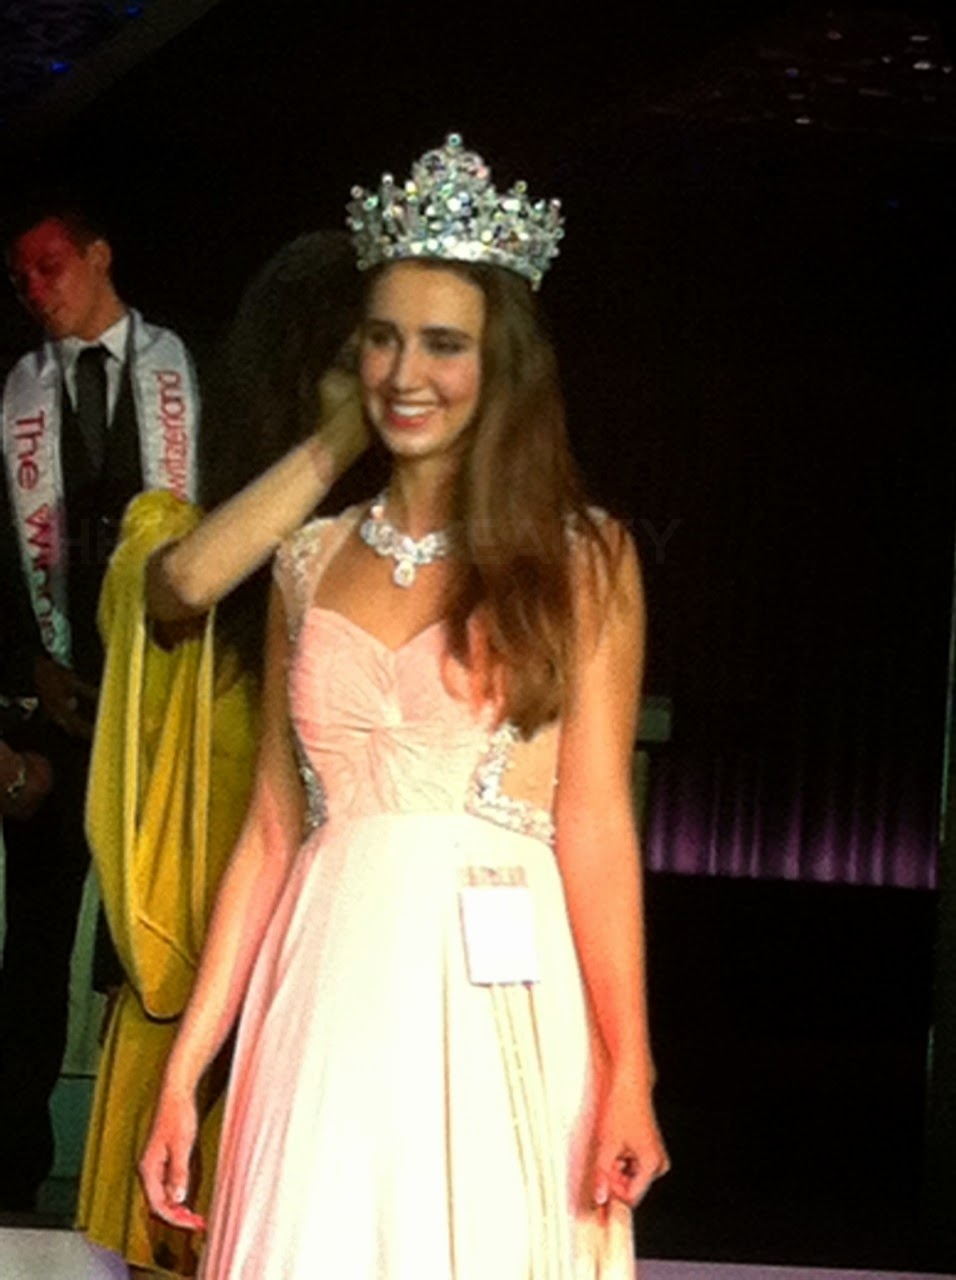 Miss World Switzerland 2014 winner Aline Morger